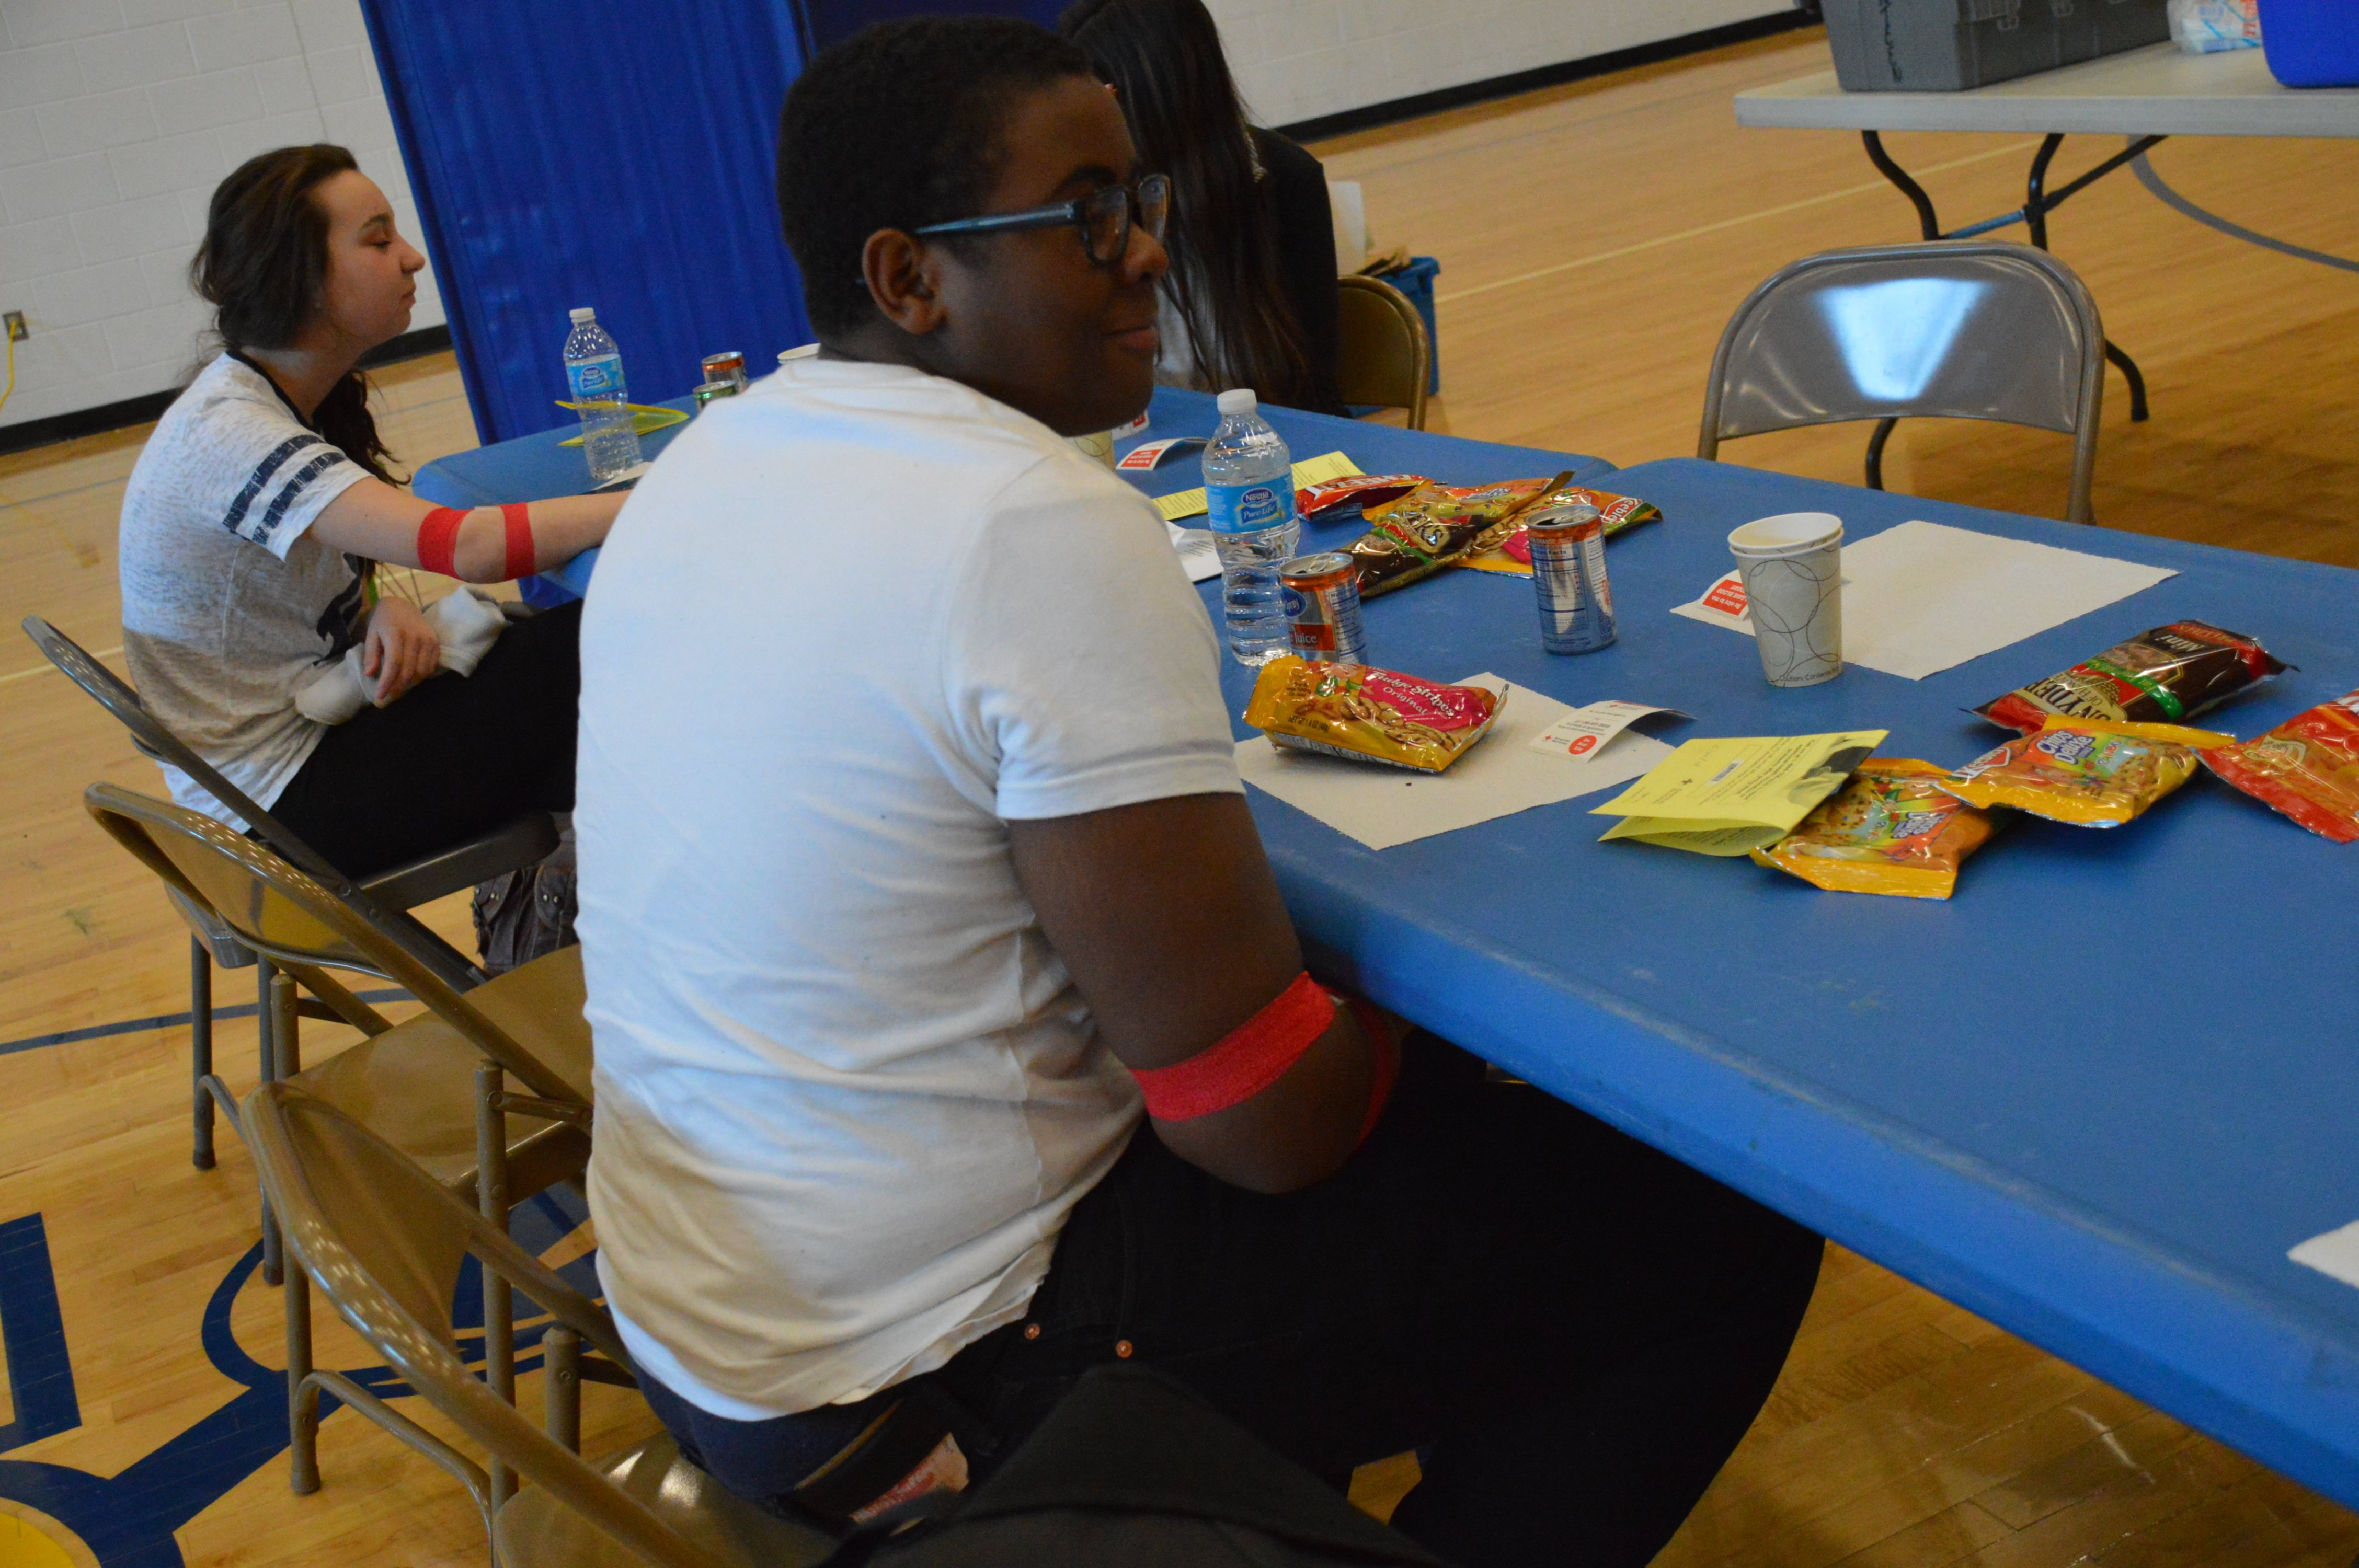 After giving blood, students are required to sit and eat some snacks provided by the NHS Members.